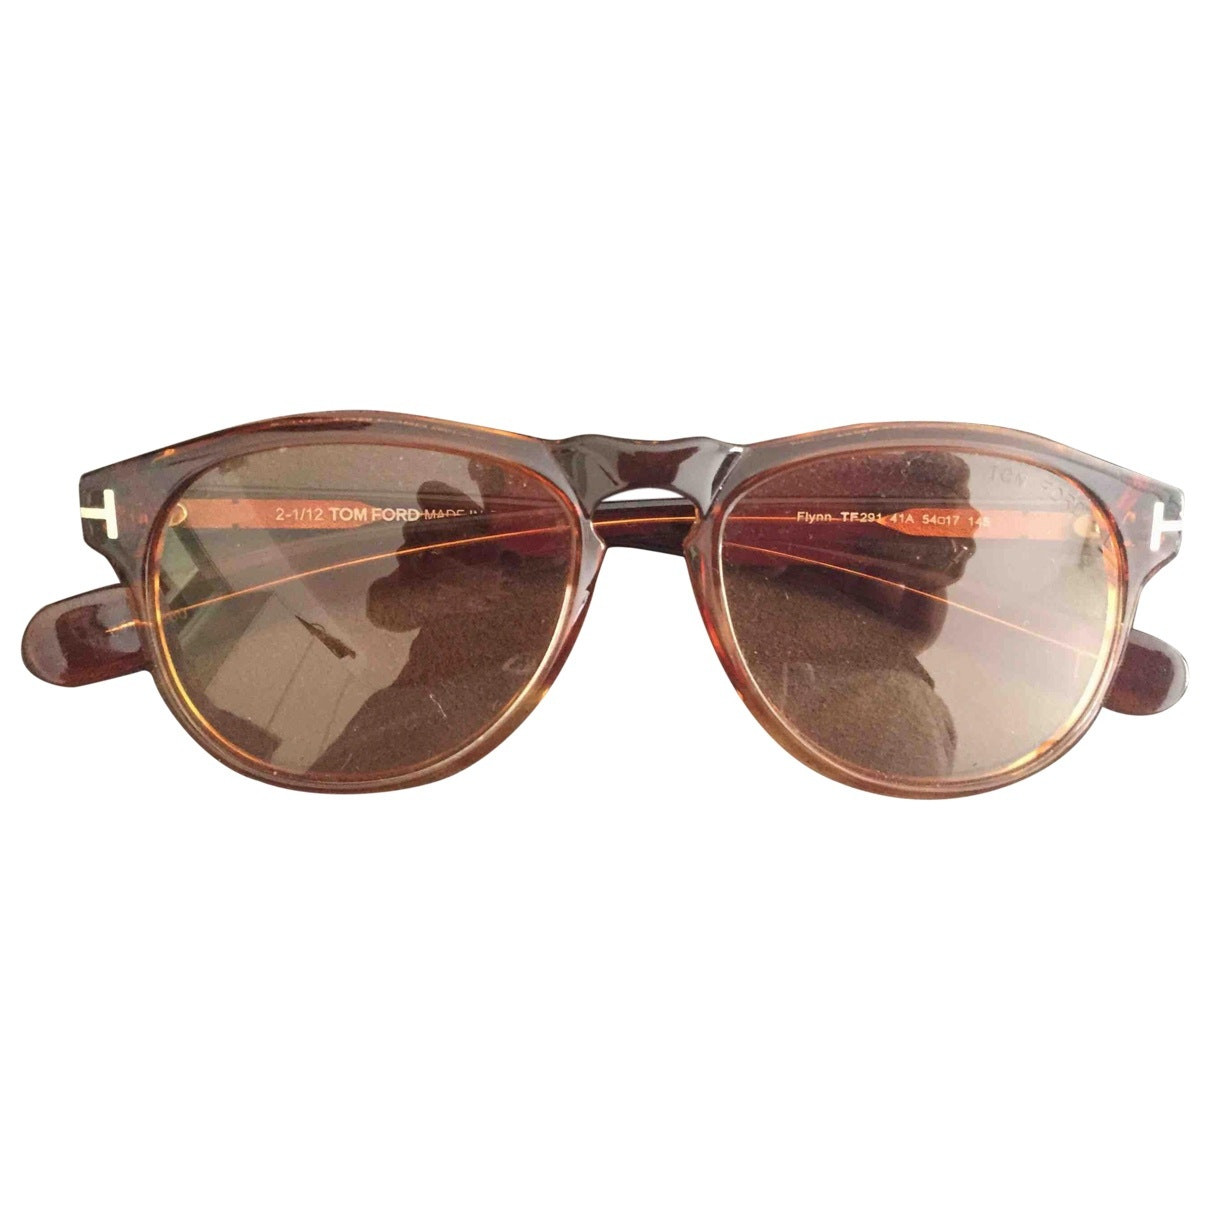 Gafas tom ford Hombre Nuevo tom ford Gafas Vestiaire Collective Of 38  Adorable Gafas tom ford Hombre